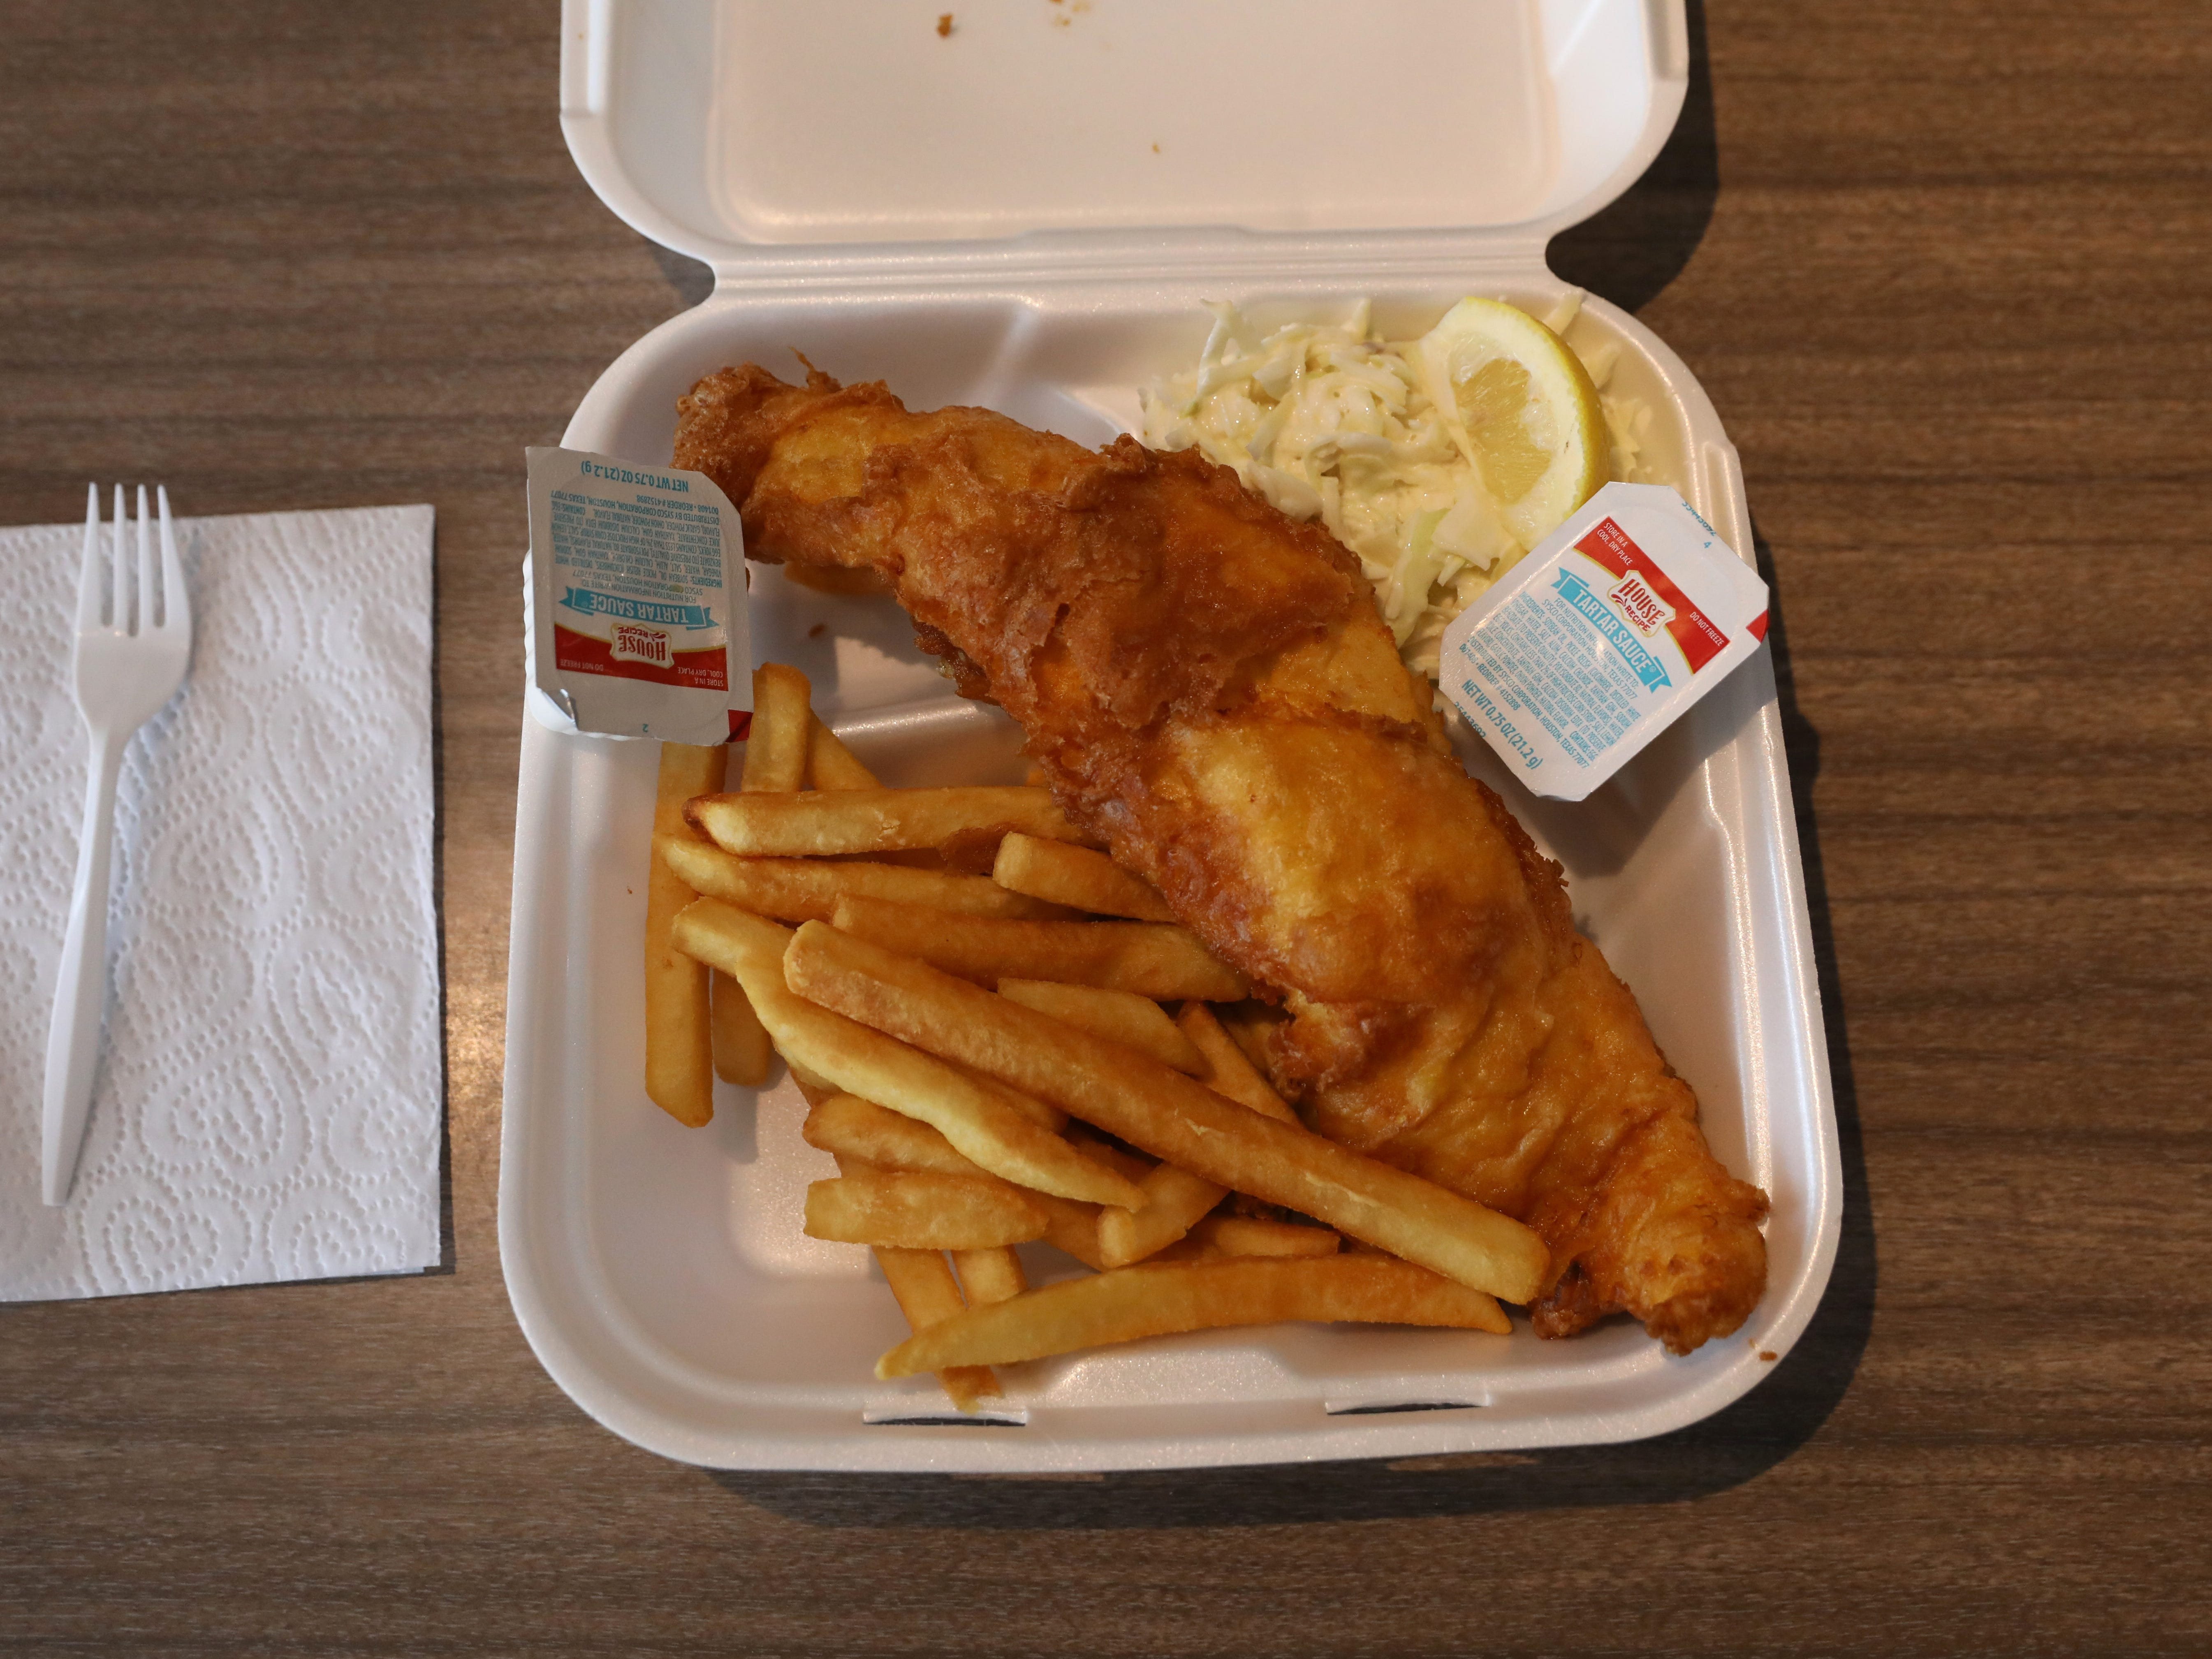 The fish fry at Captain Jim's Fish Market is packaged for takeout.